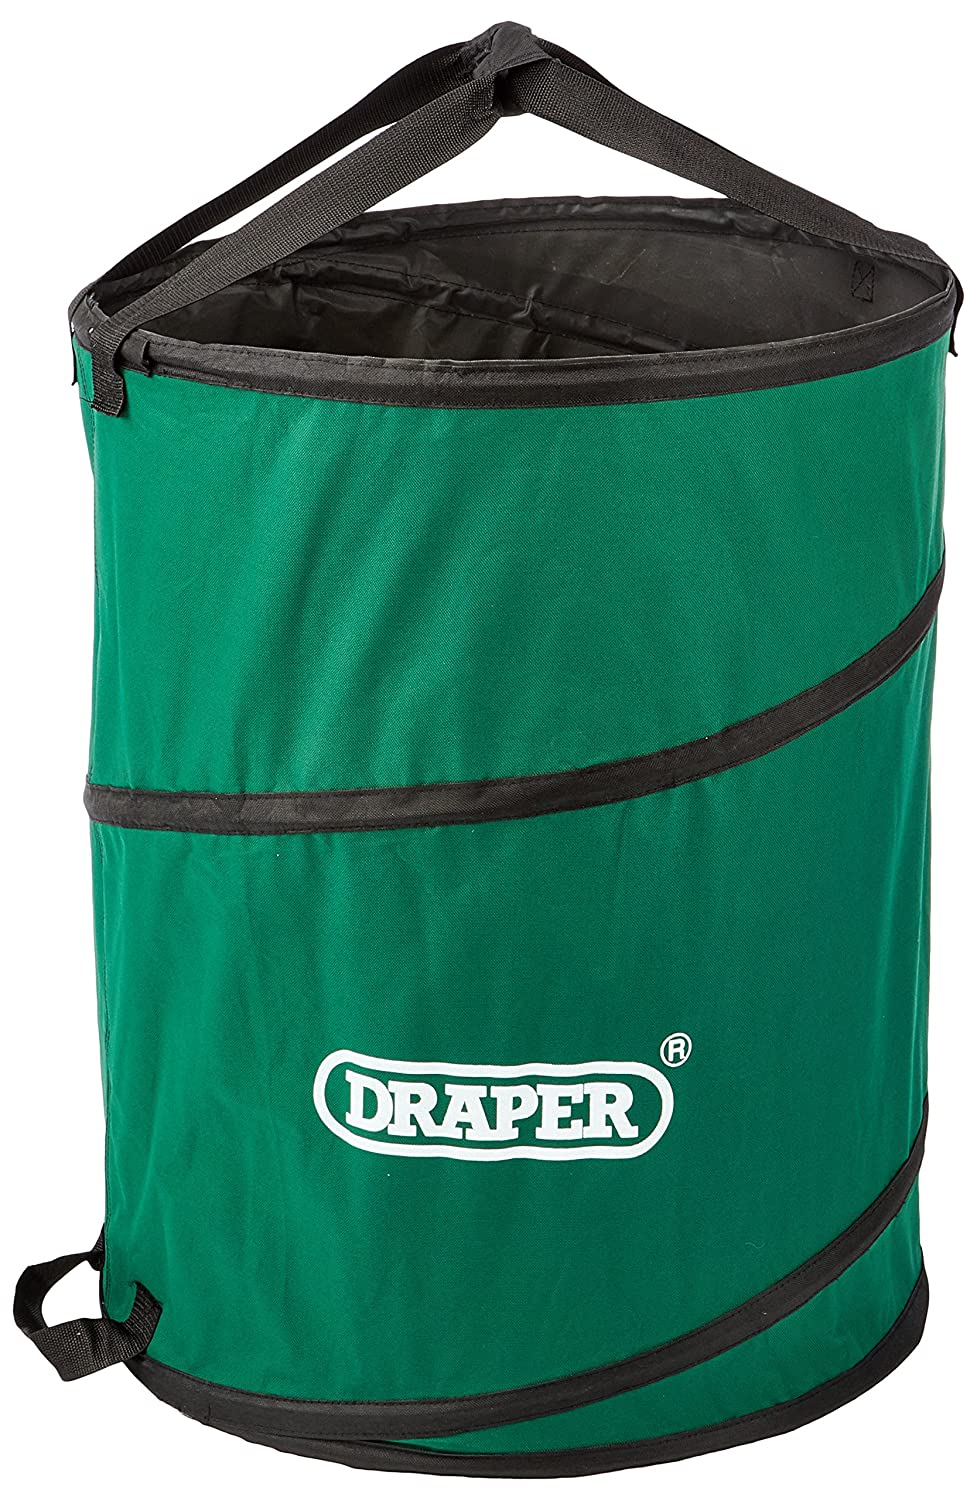 Draper PUTB2/D General Purpose Pop Up Tidy Bag, Green, 470 x 400 mm DRA34040